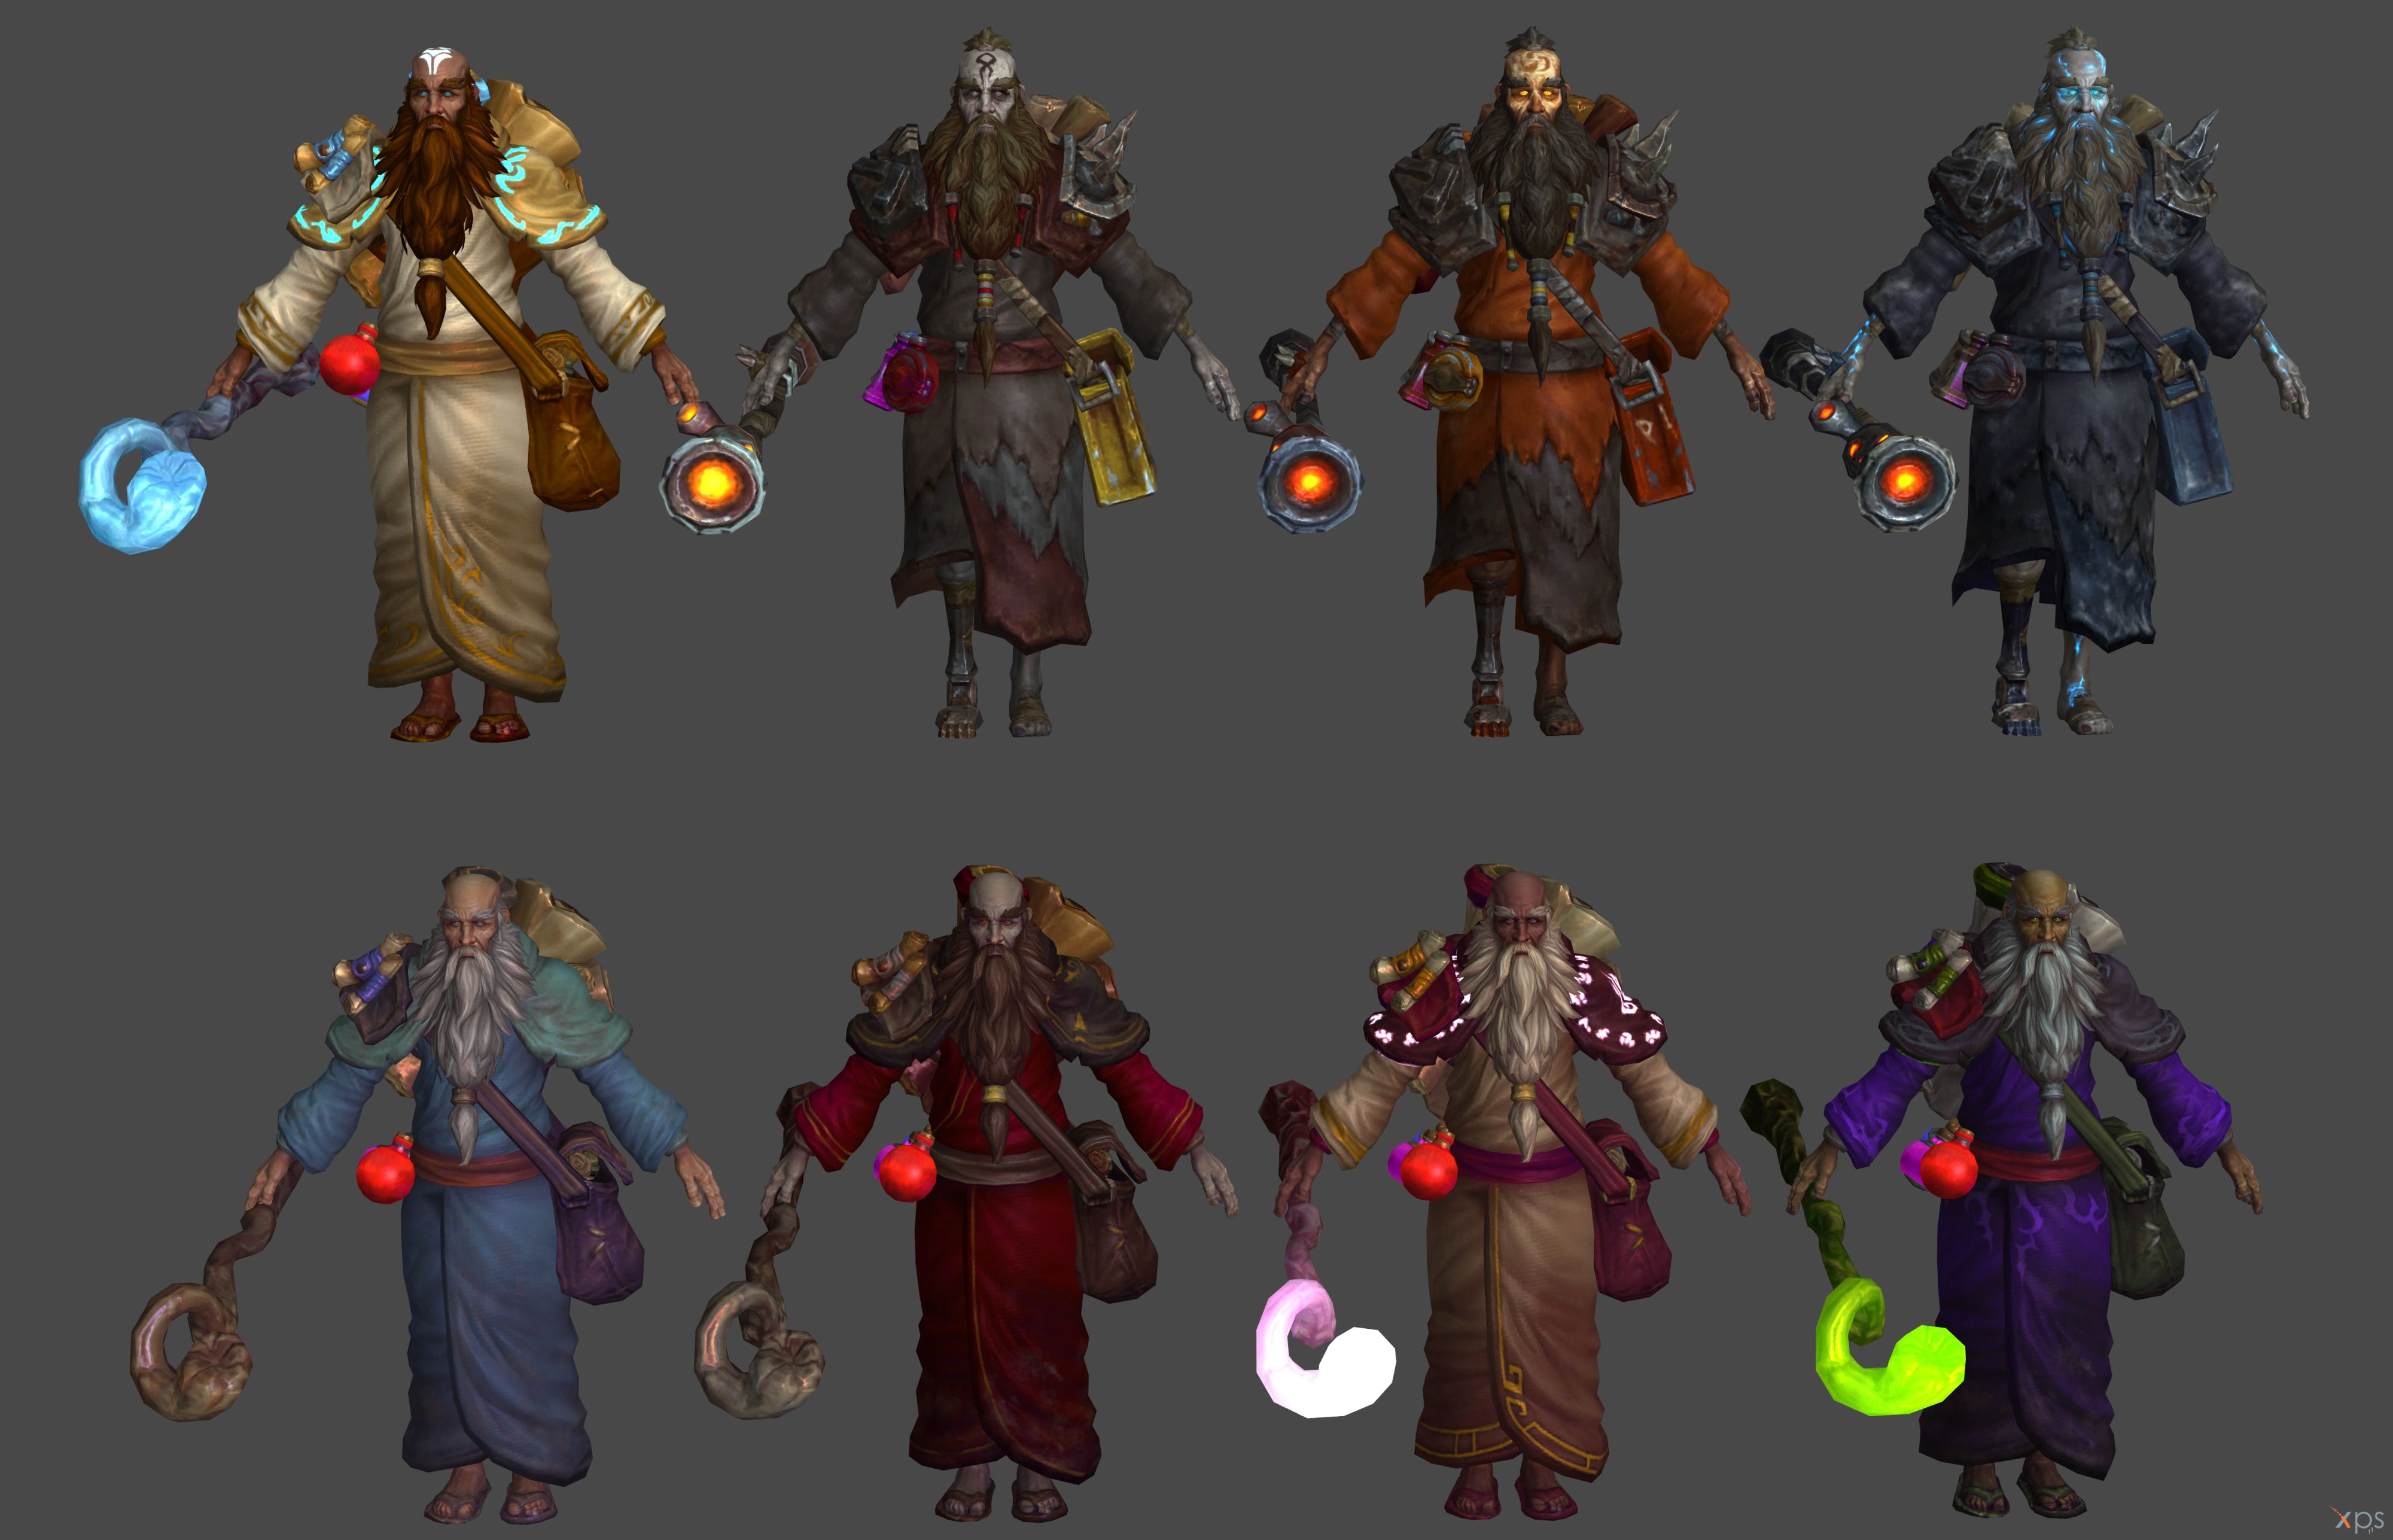 Heroes Of The Storm Deckard Cain Xps Only By Lezisell On Deviantart It's been a long time. heroes of the storm deckard cain xps